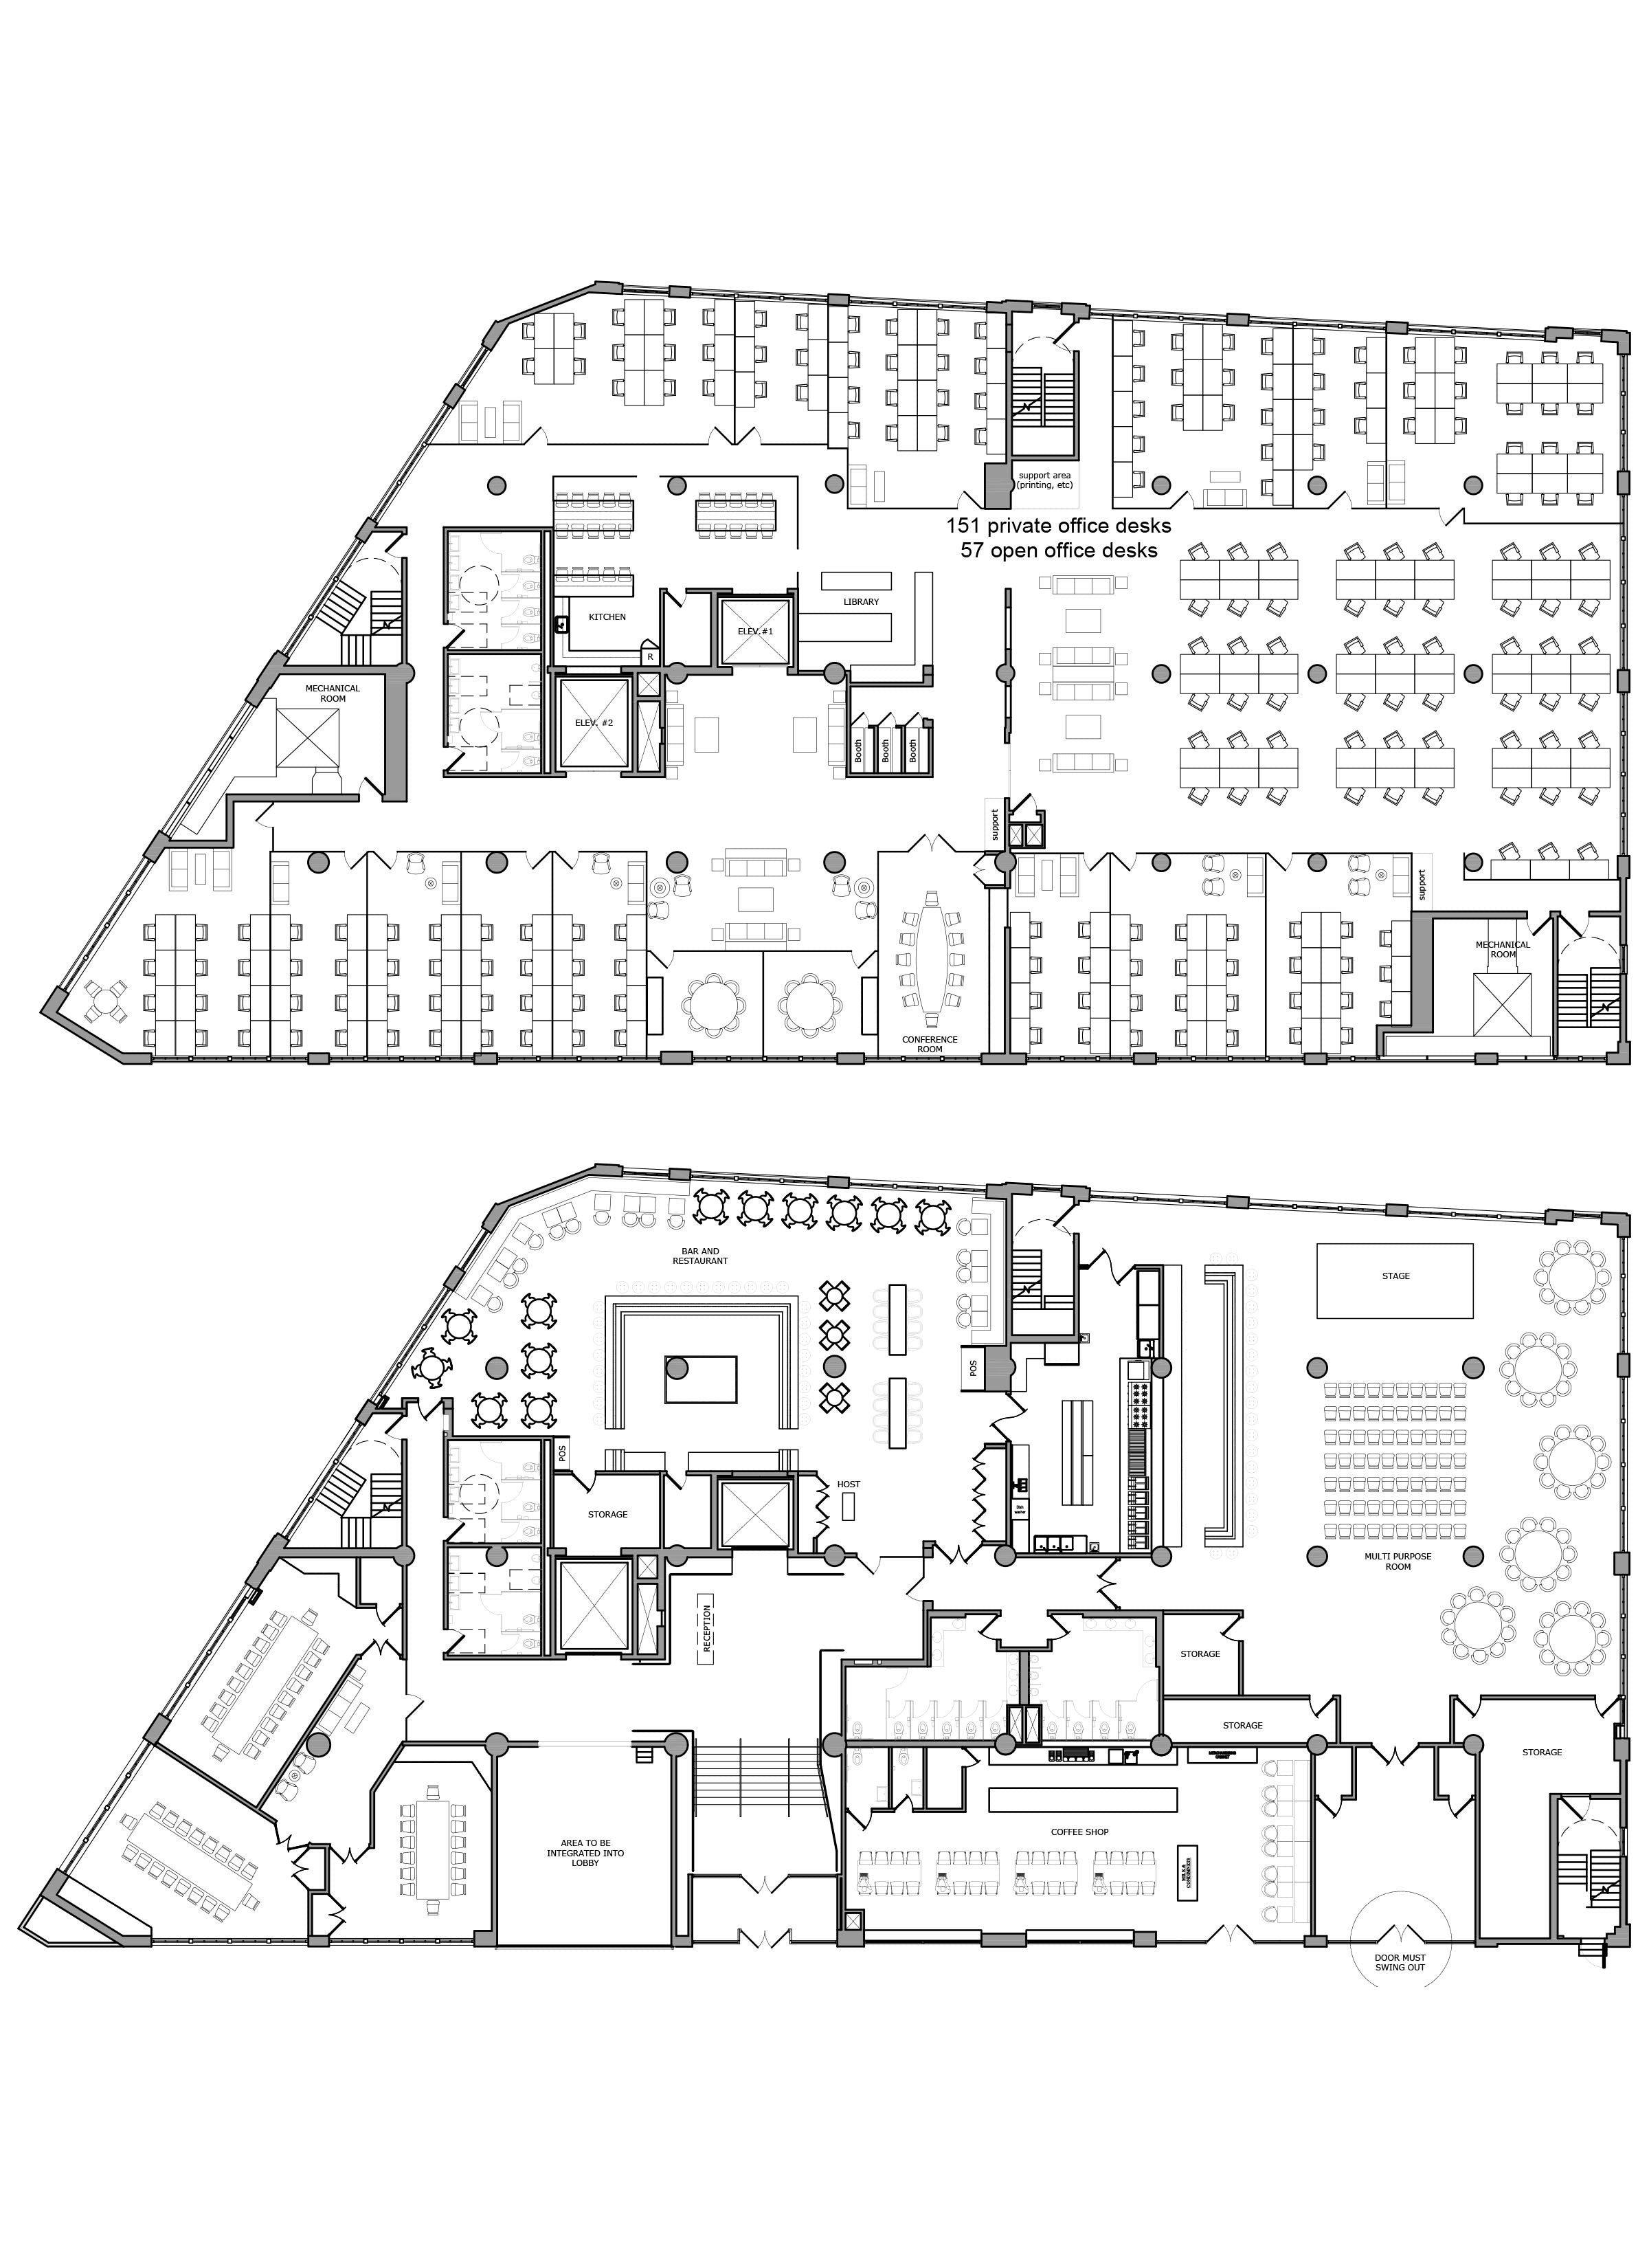 Floor Plan Design - Office test fit_Commercial Building Floor Plan _Brooklyn